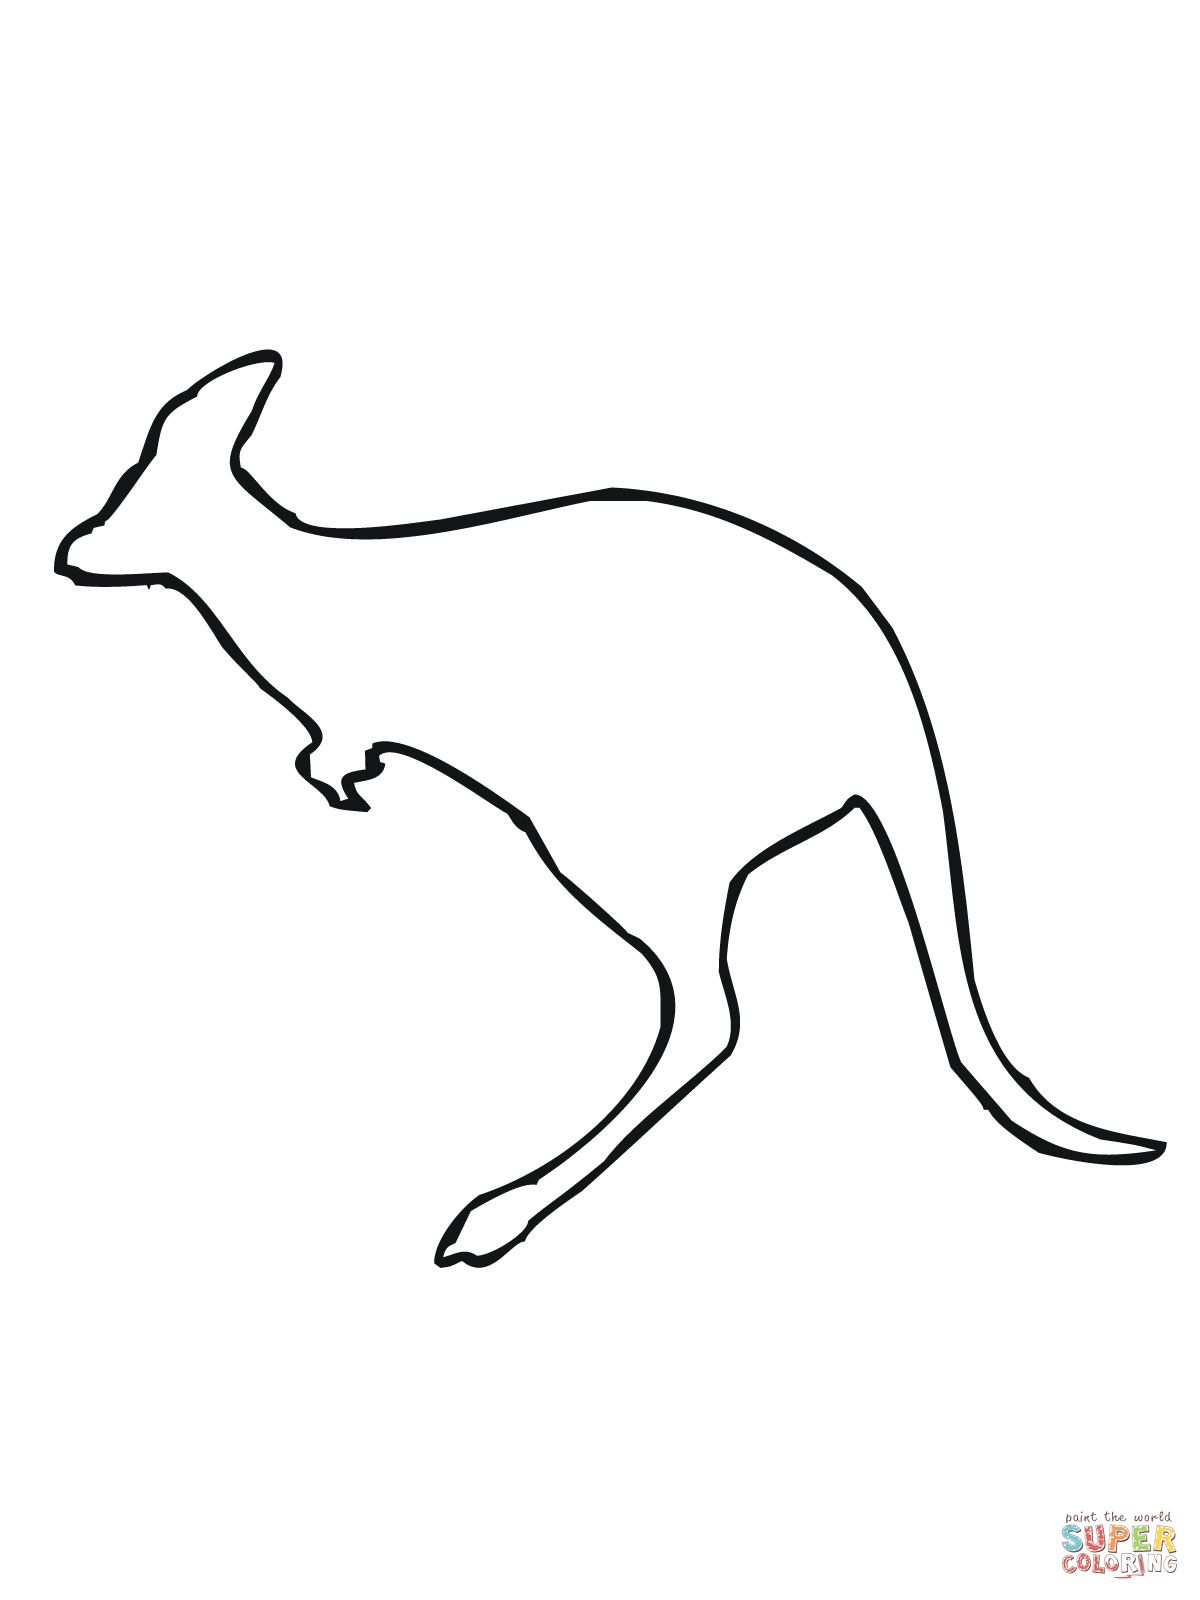 kangaroo animal coloring pages. Leaping Kangaroo Outline coloring page  SuperColoring com tats